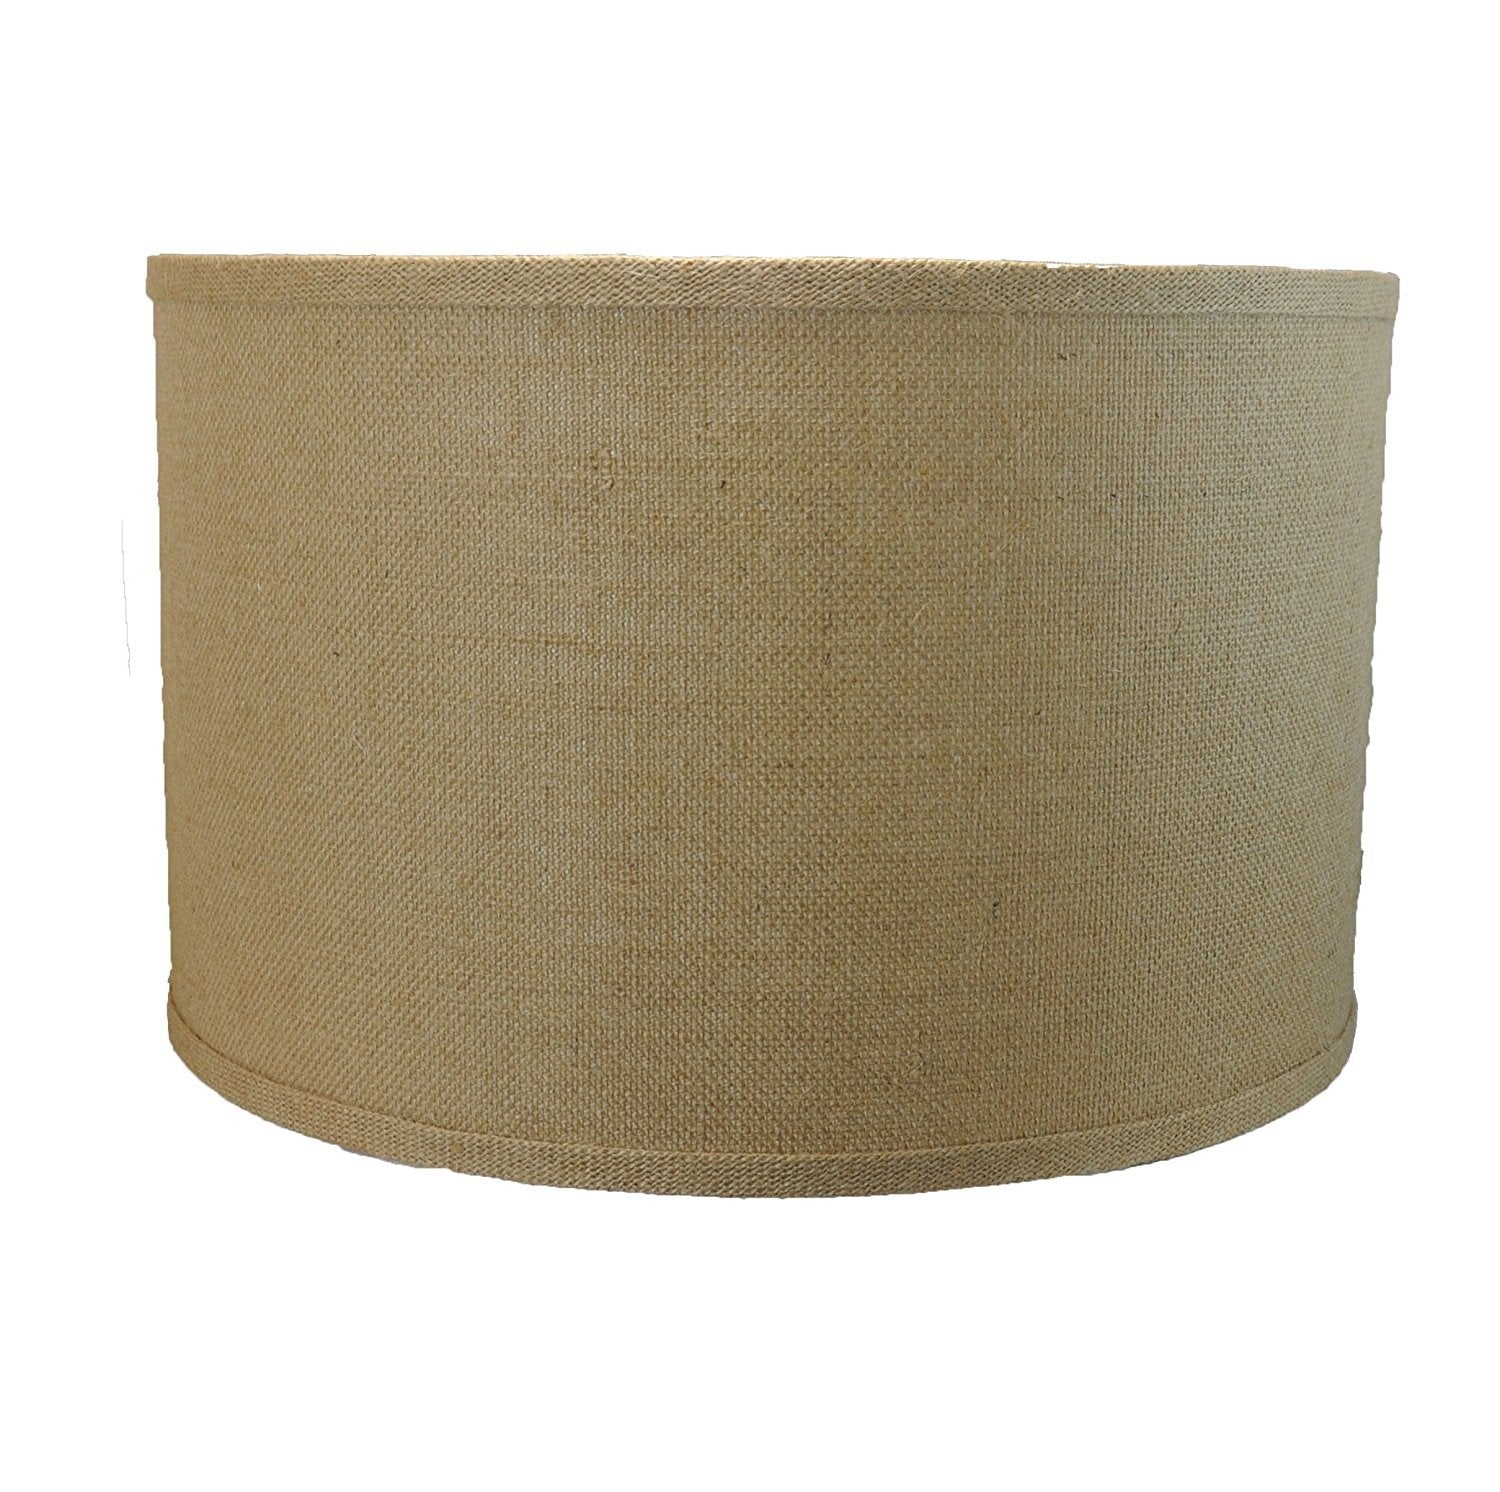 "Burlap Drum Lamp Shade, 16x16x10"", Spider"